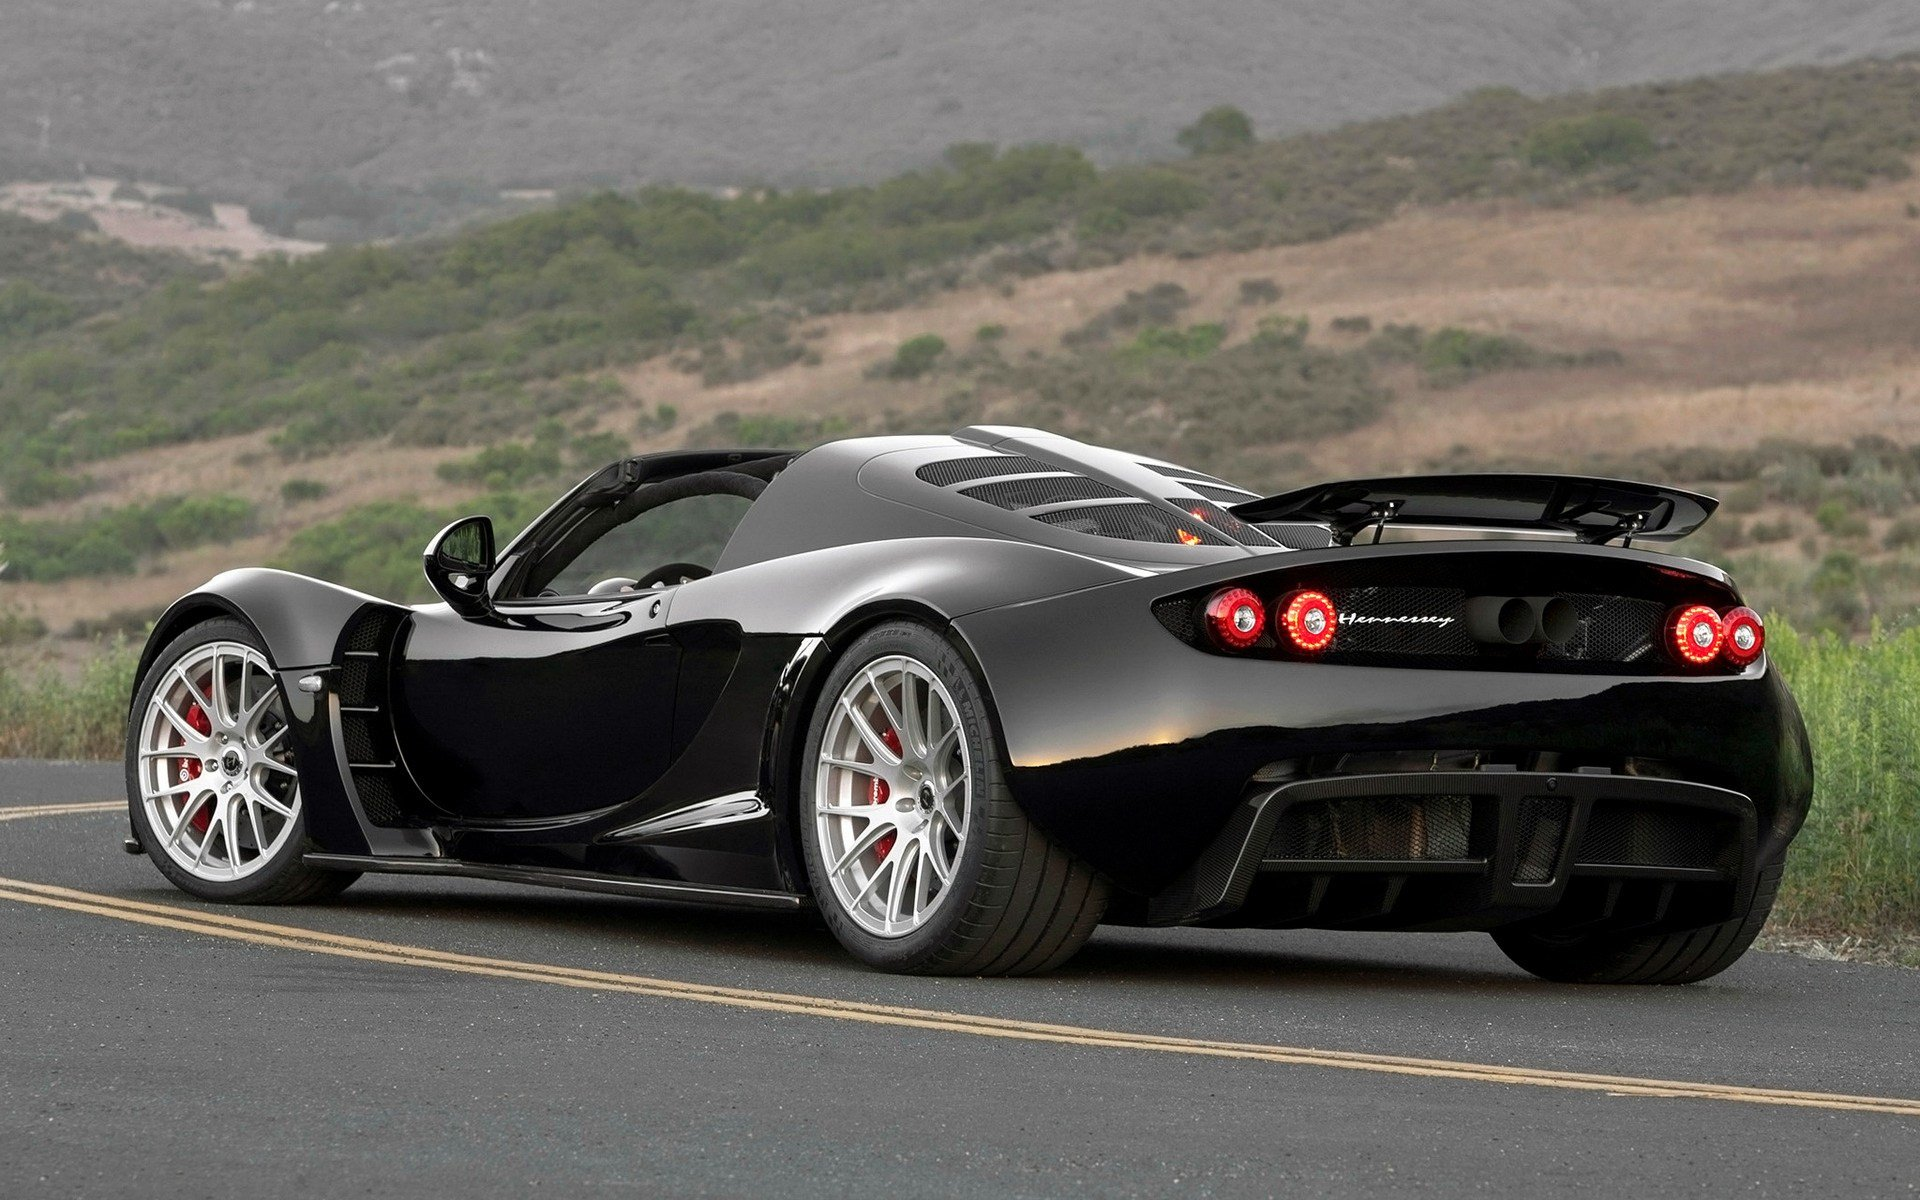 Latest 2013 Hennessey Venom Gt Spyder Wallpapers And Hd Images Free Download